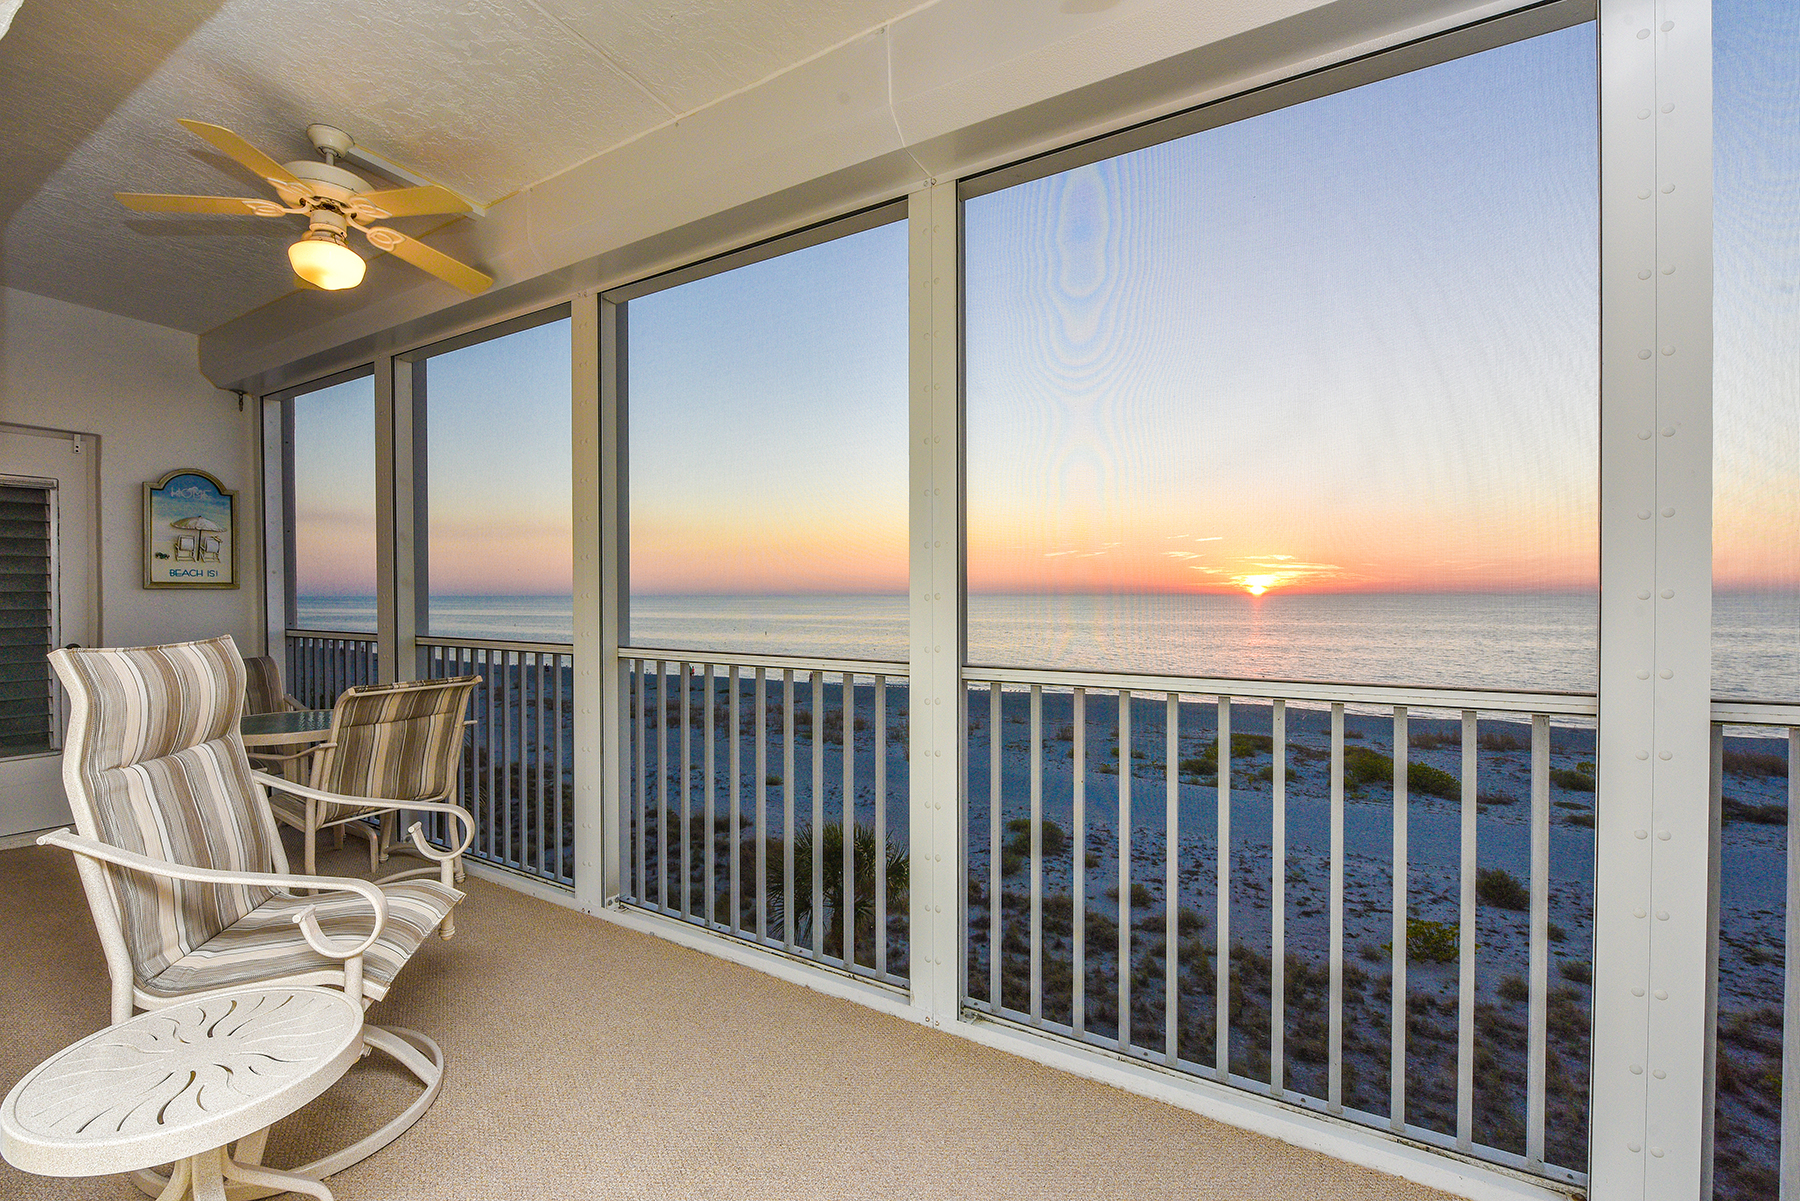 Condominium for Sale at 333 The Esplanade N, 405, Venice, FL 34285 333 The Esplanade N 405 Venice, Florida, 34285 United States